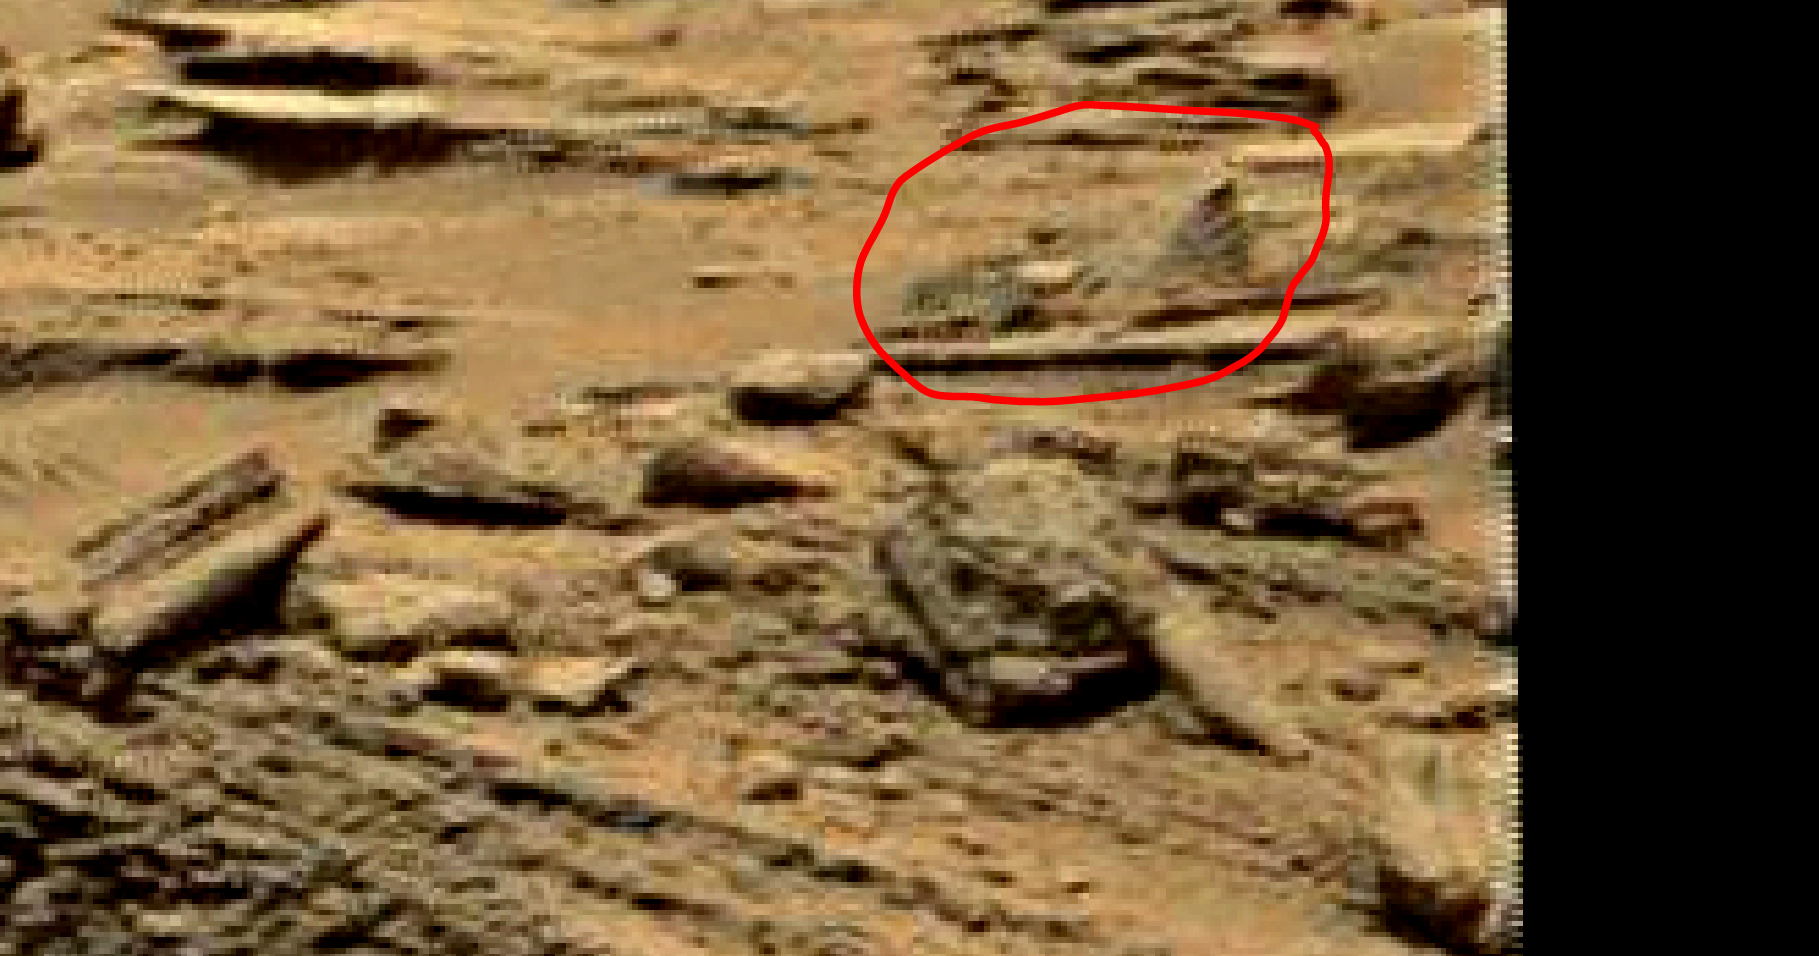 mars sol 1353 anomaly-artifacts 6b was life on mars